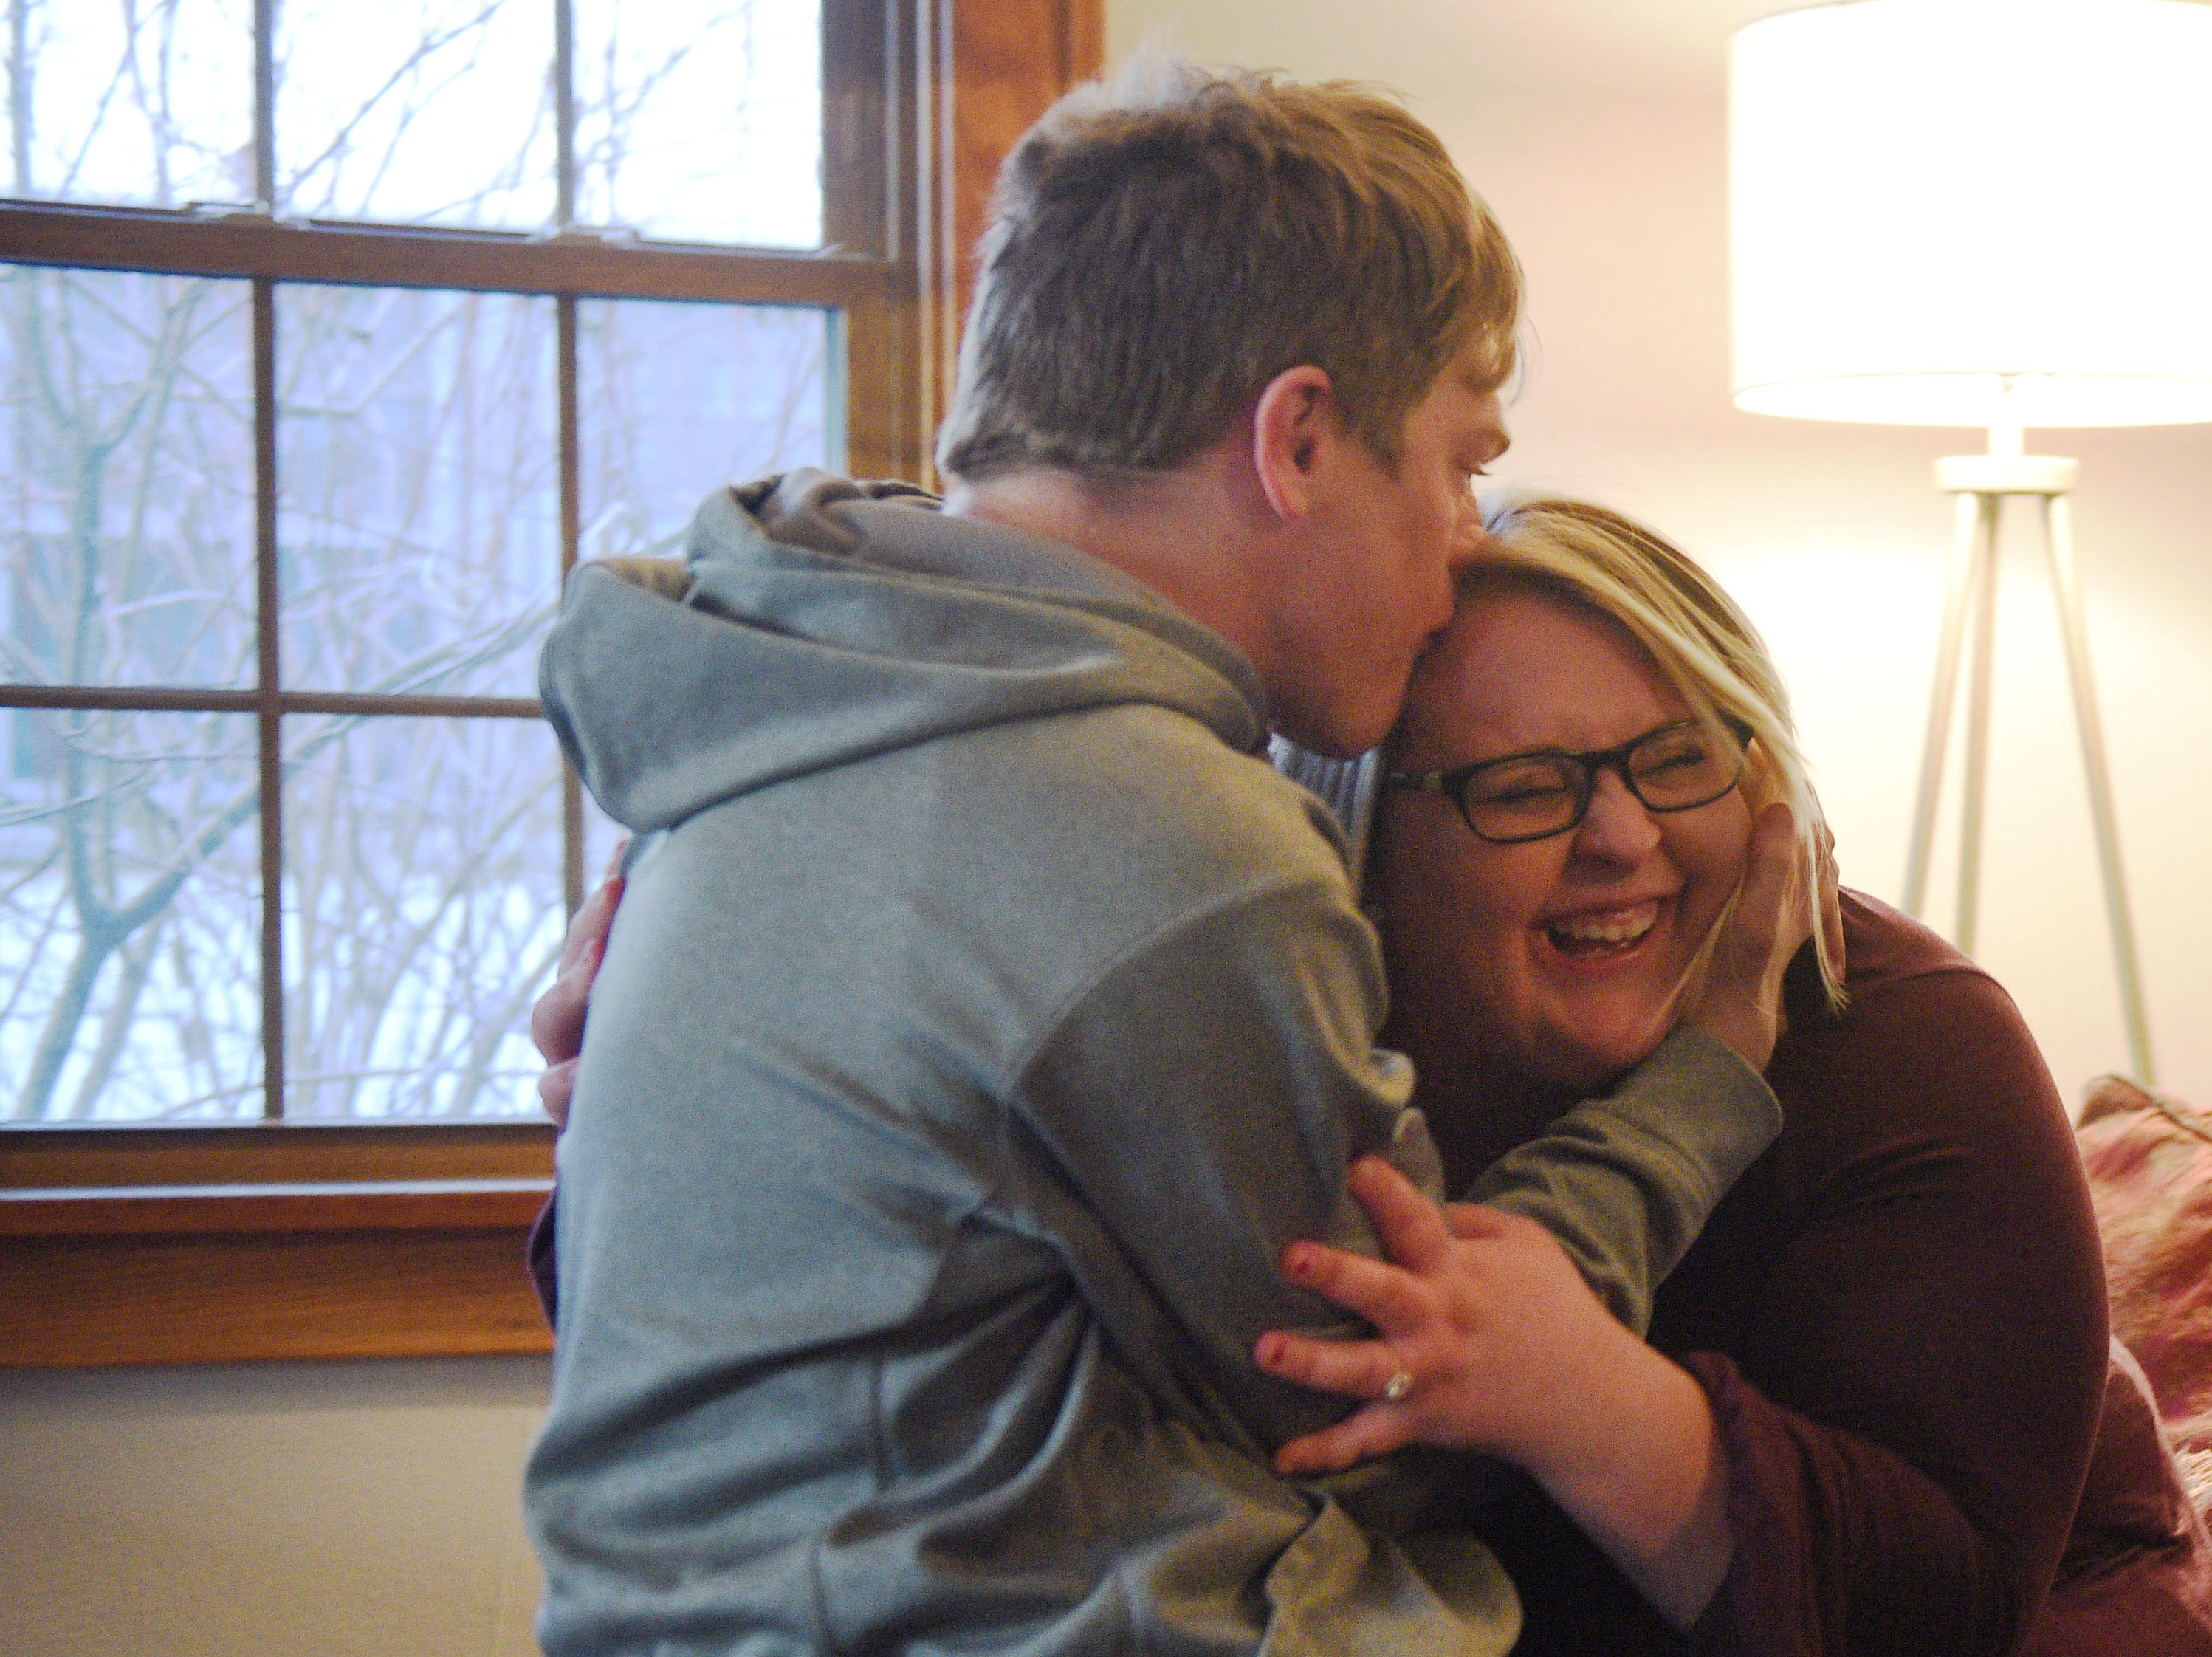 Ben Graff gives his roommate Jenna Askelson a kiss while having people over at his new house Wednesday, Nov. 7, in Sioux Falls. He lives with Shared Living Provider Kayla Harris and roommate Jenna Askelson.